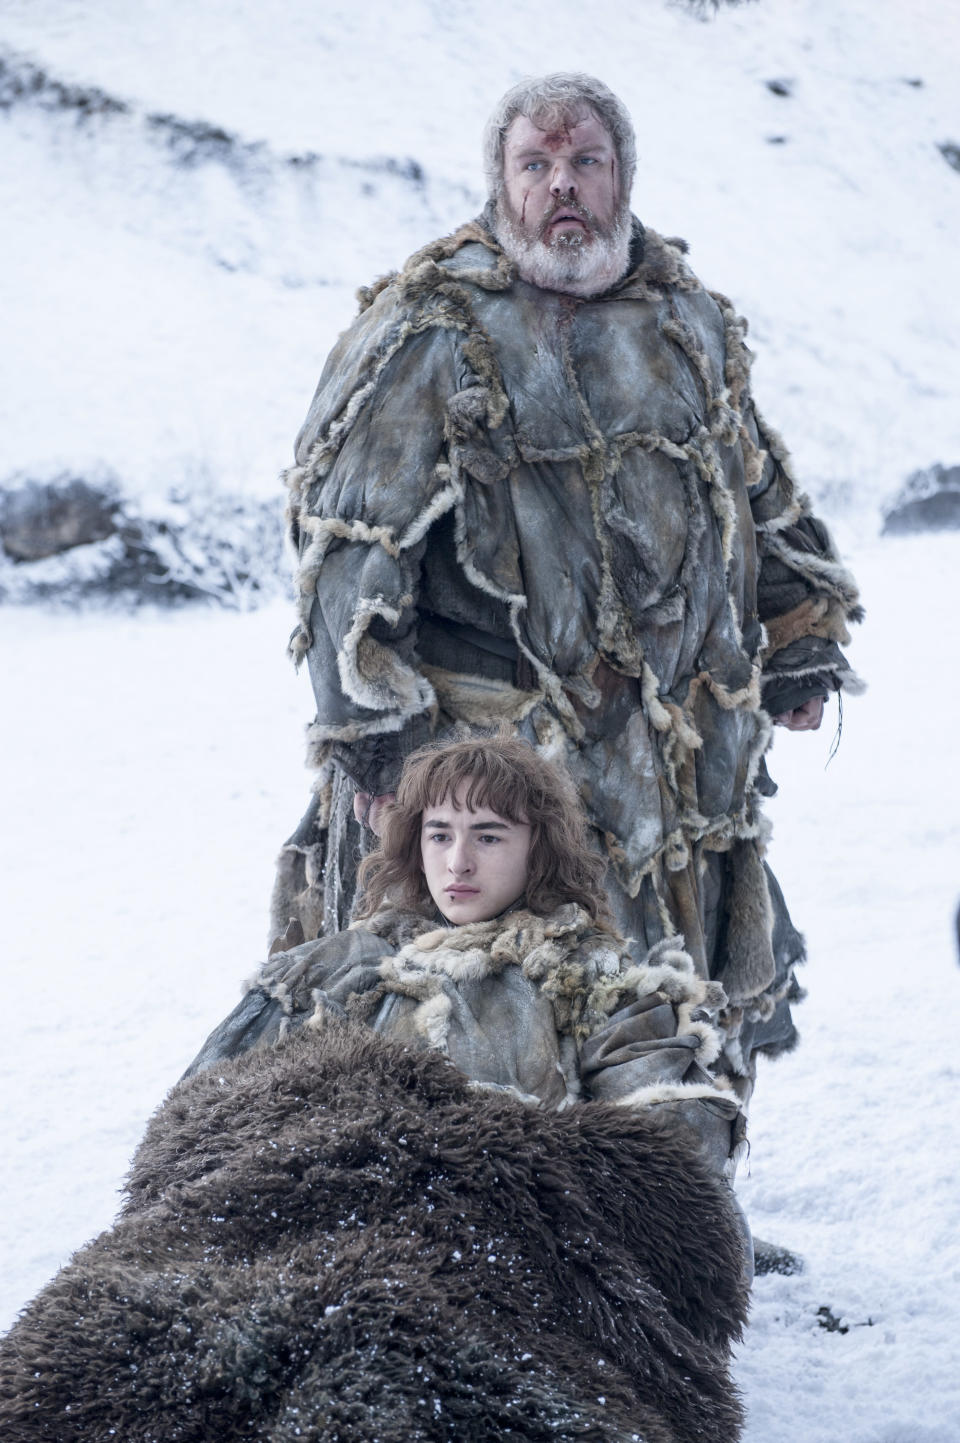 """Hodor (Kristian Nairn) and Bran Stark (Isaac Hempstead Wright) in """"Game of Thrones"""". (PHOTO: HBO)"""